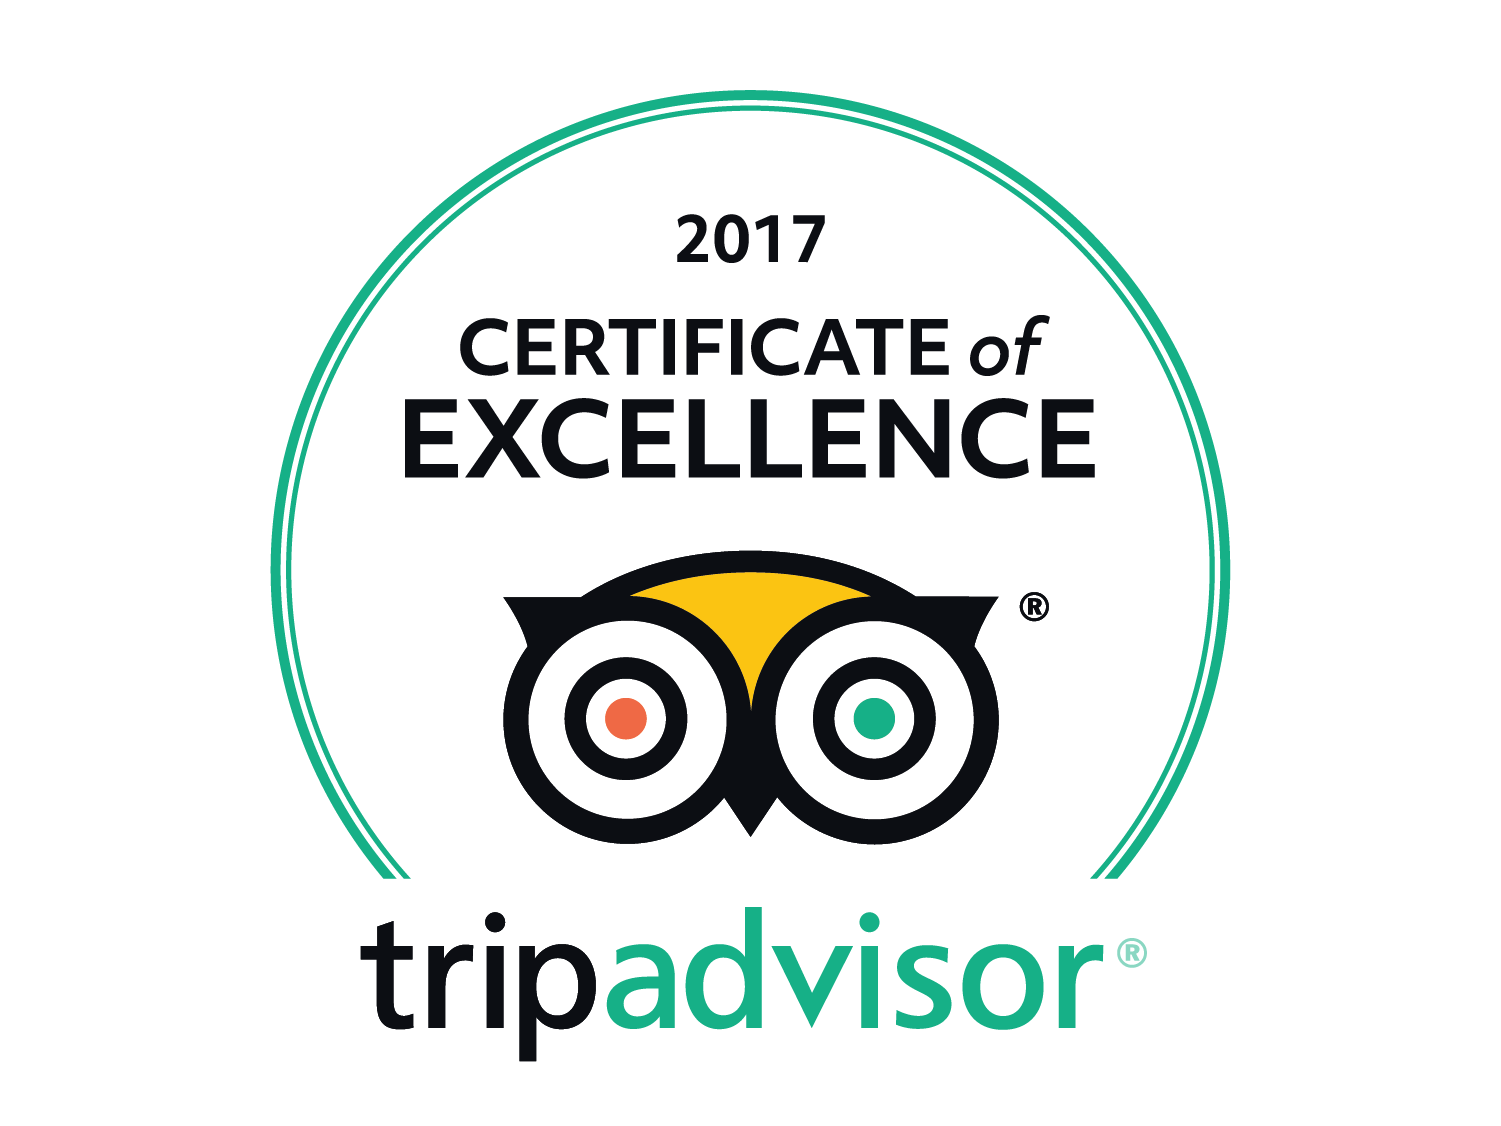 We won a TripAdvisor certificate of Excellence award